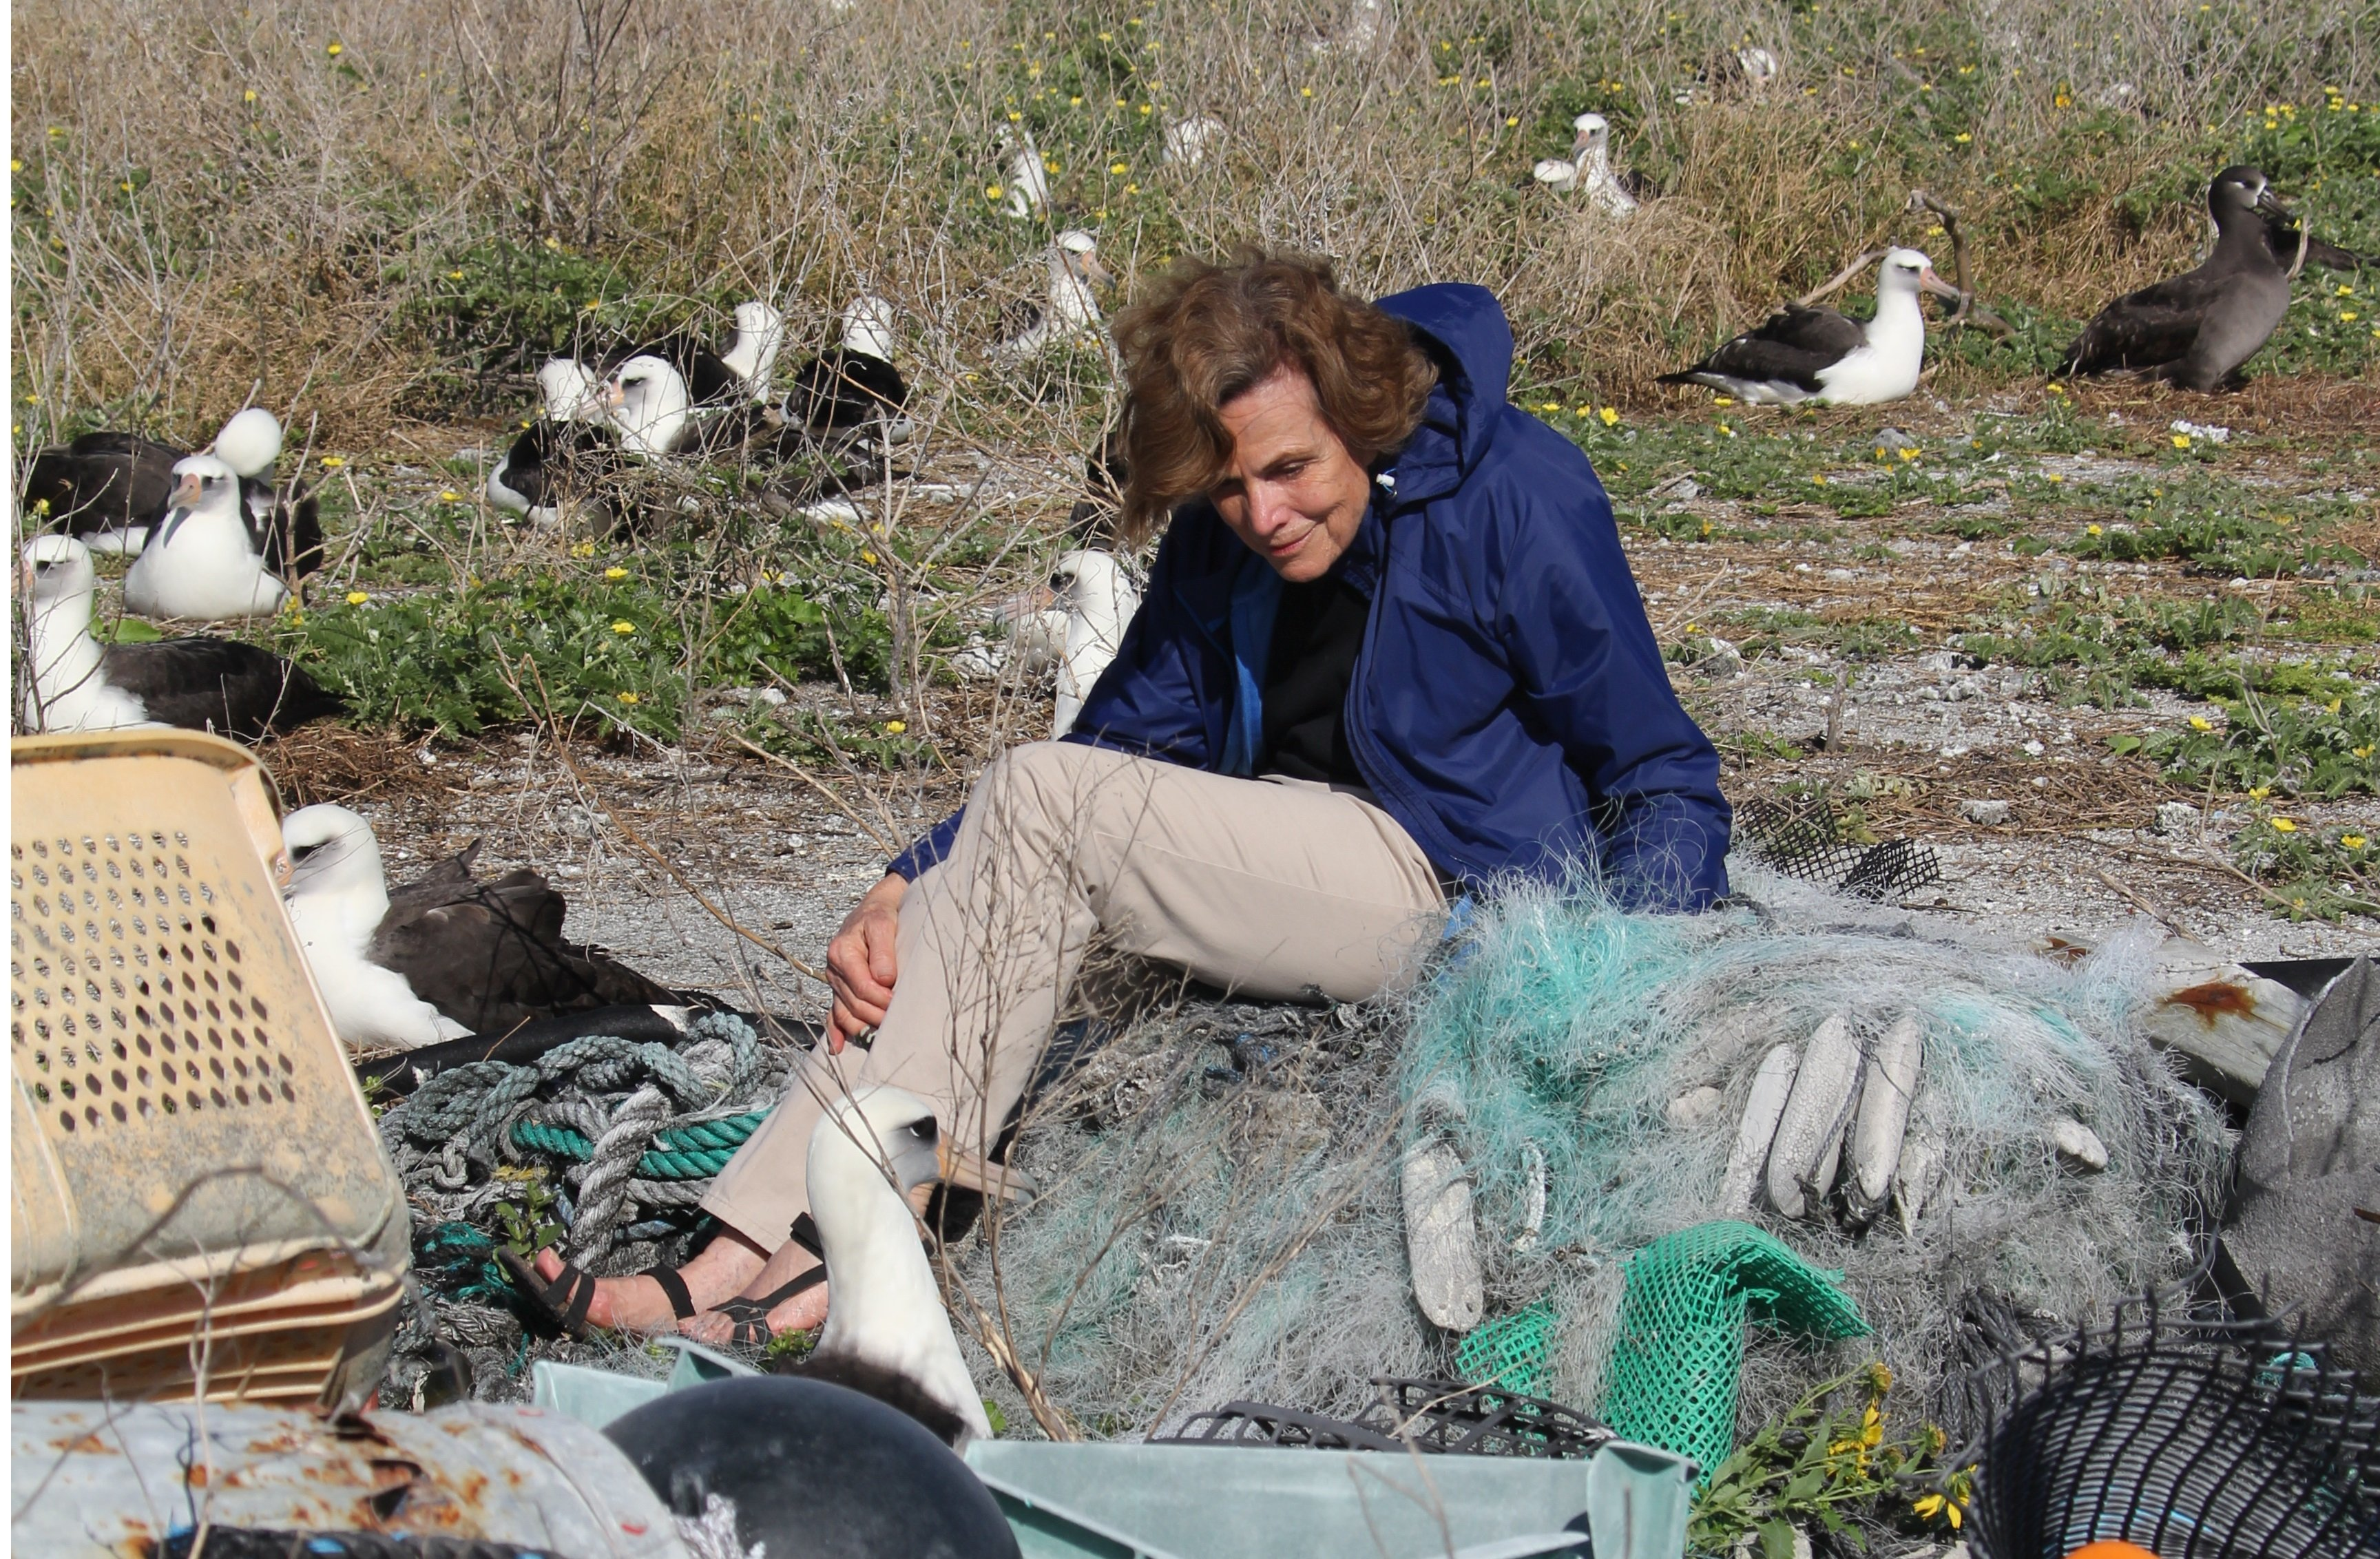 Dr Sylvia Earle (c) NOAA Office of National Marine Sanctuaries